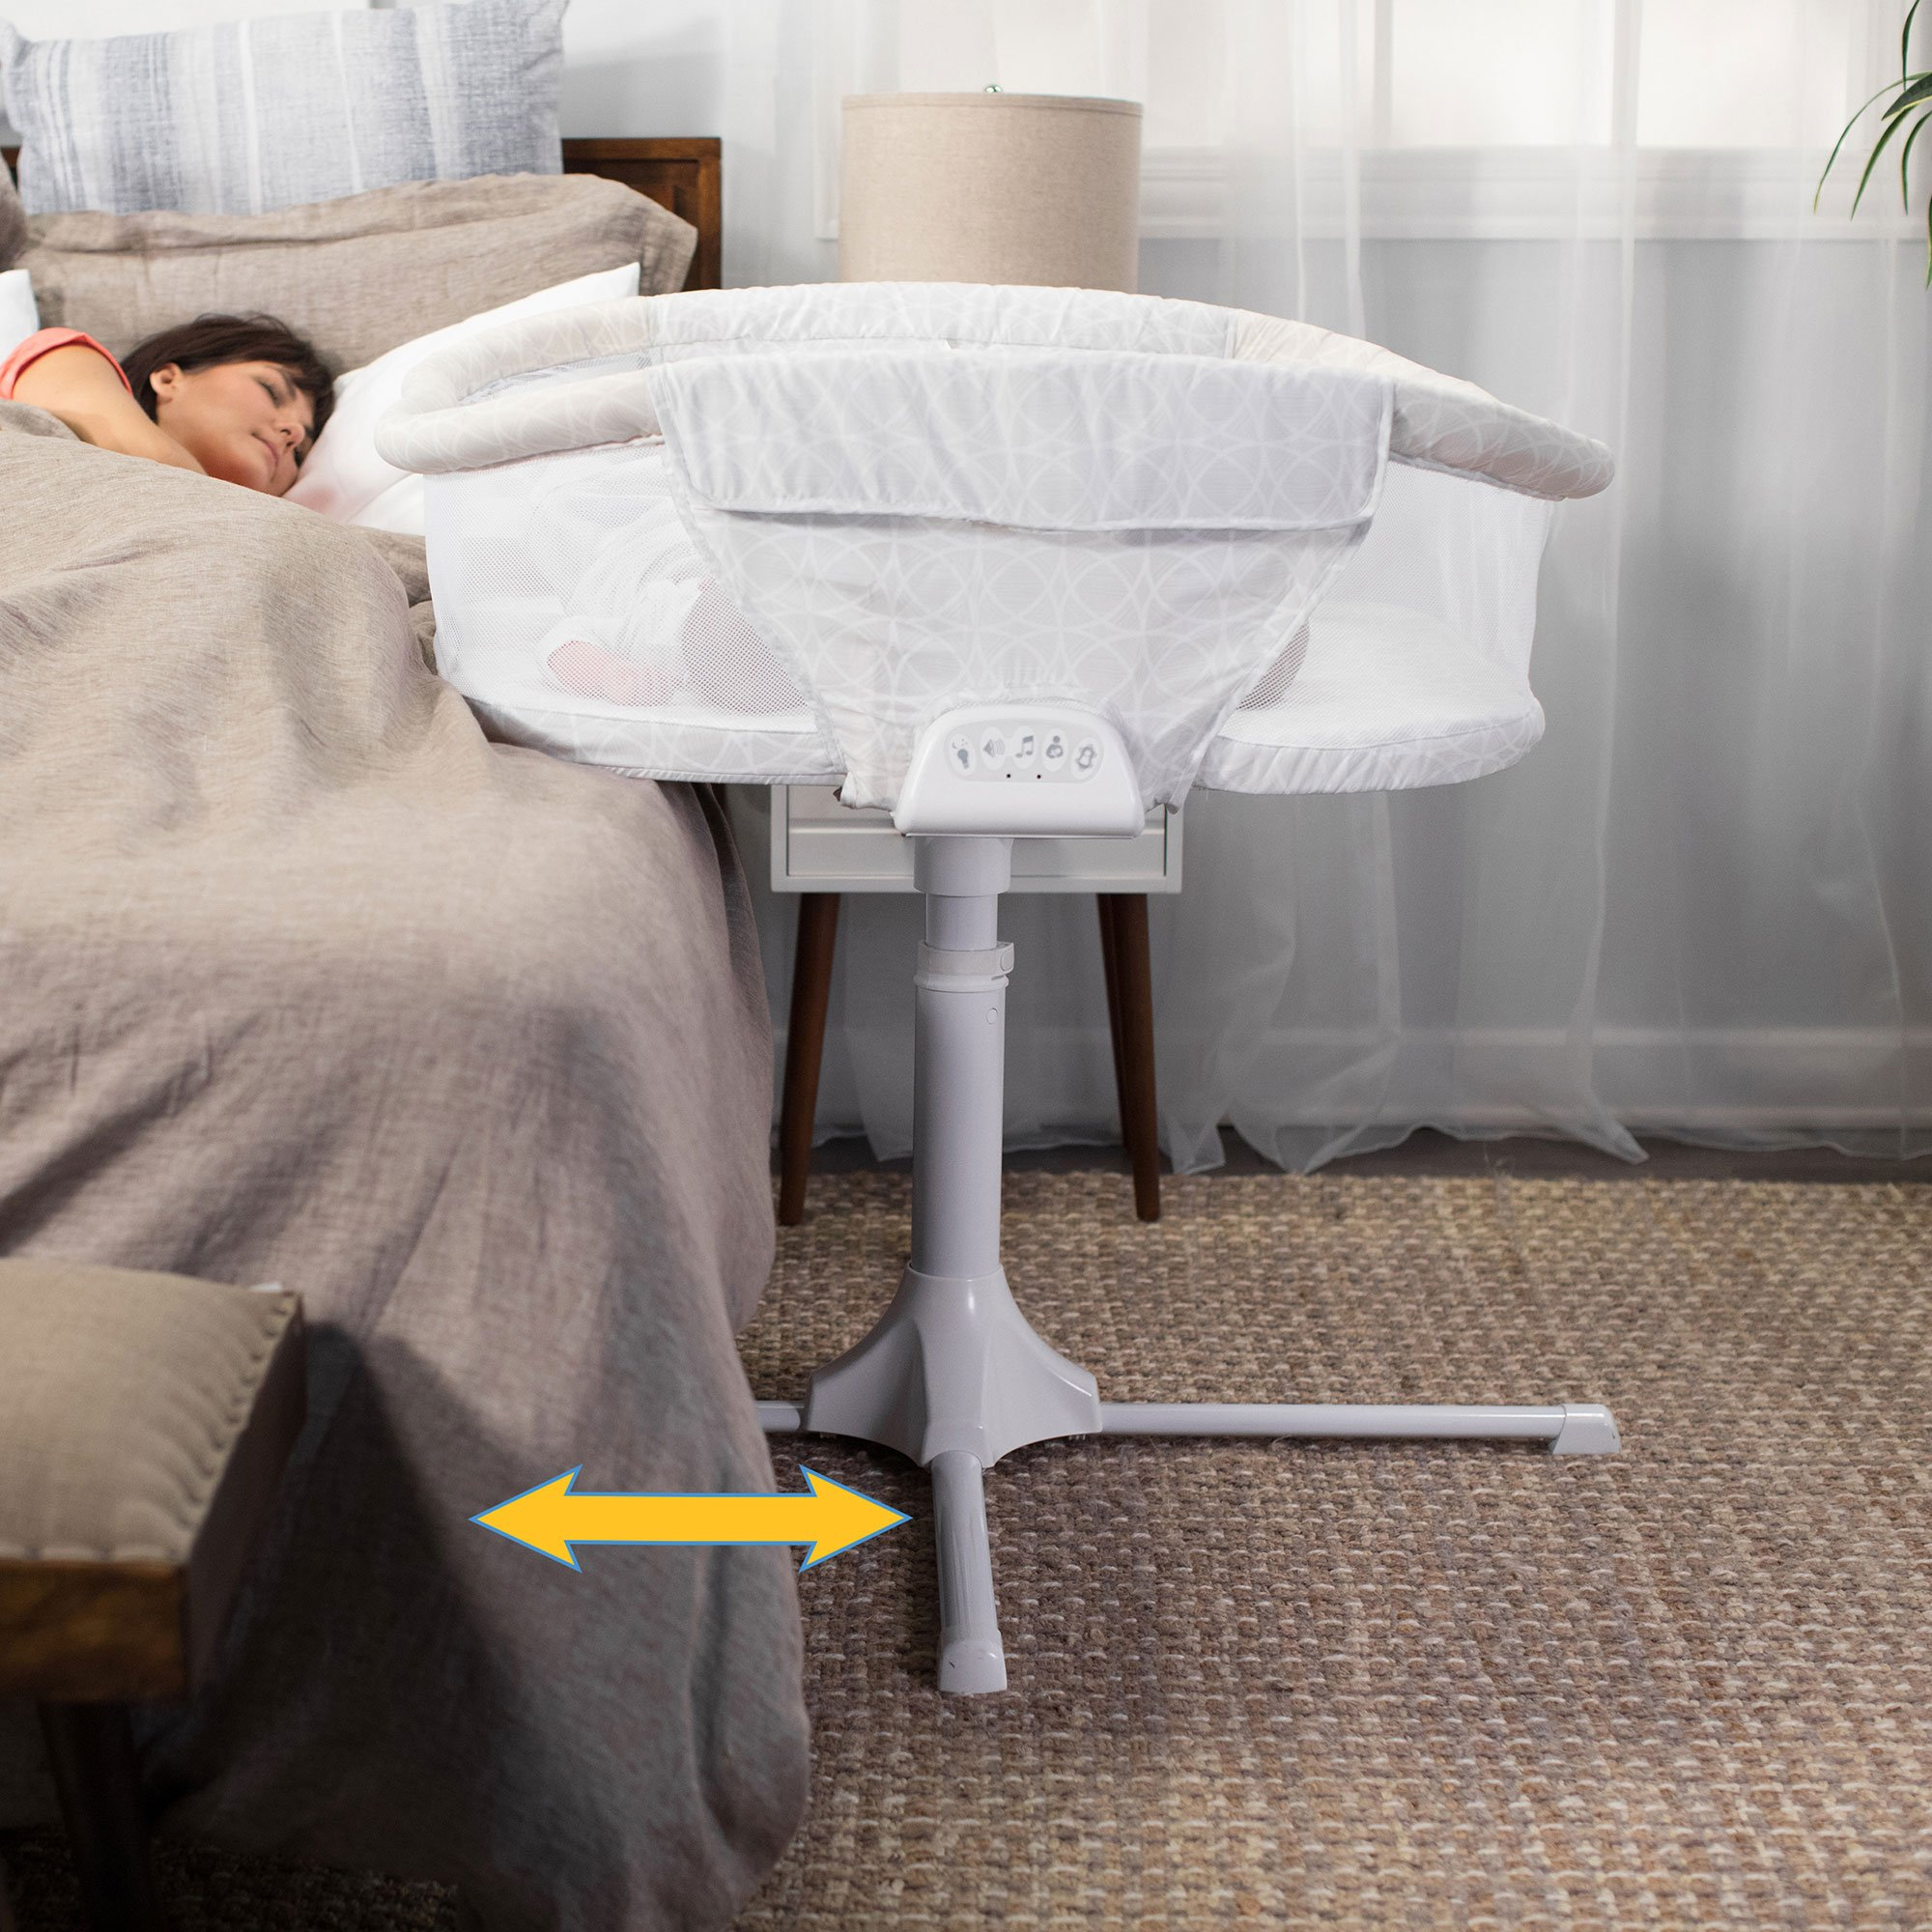 HALO Bassinest Twin Sleeper Double Bassinet – Premiere Series, Sand Circle by Halo (Image #5)